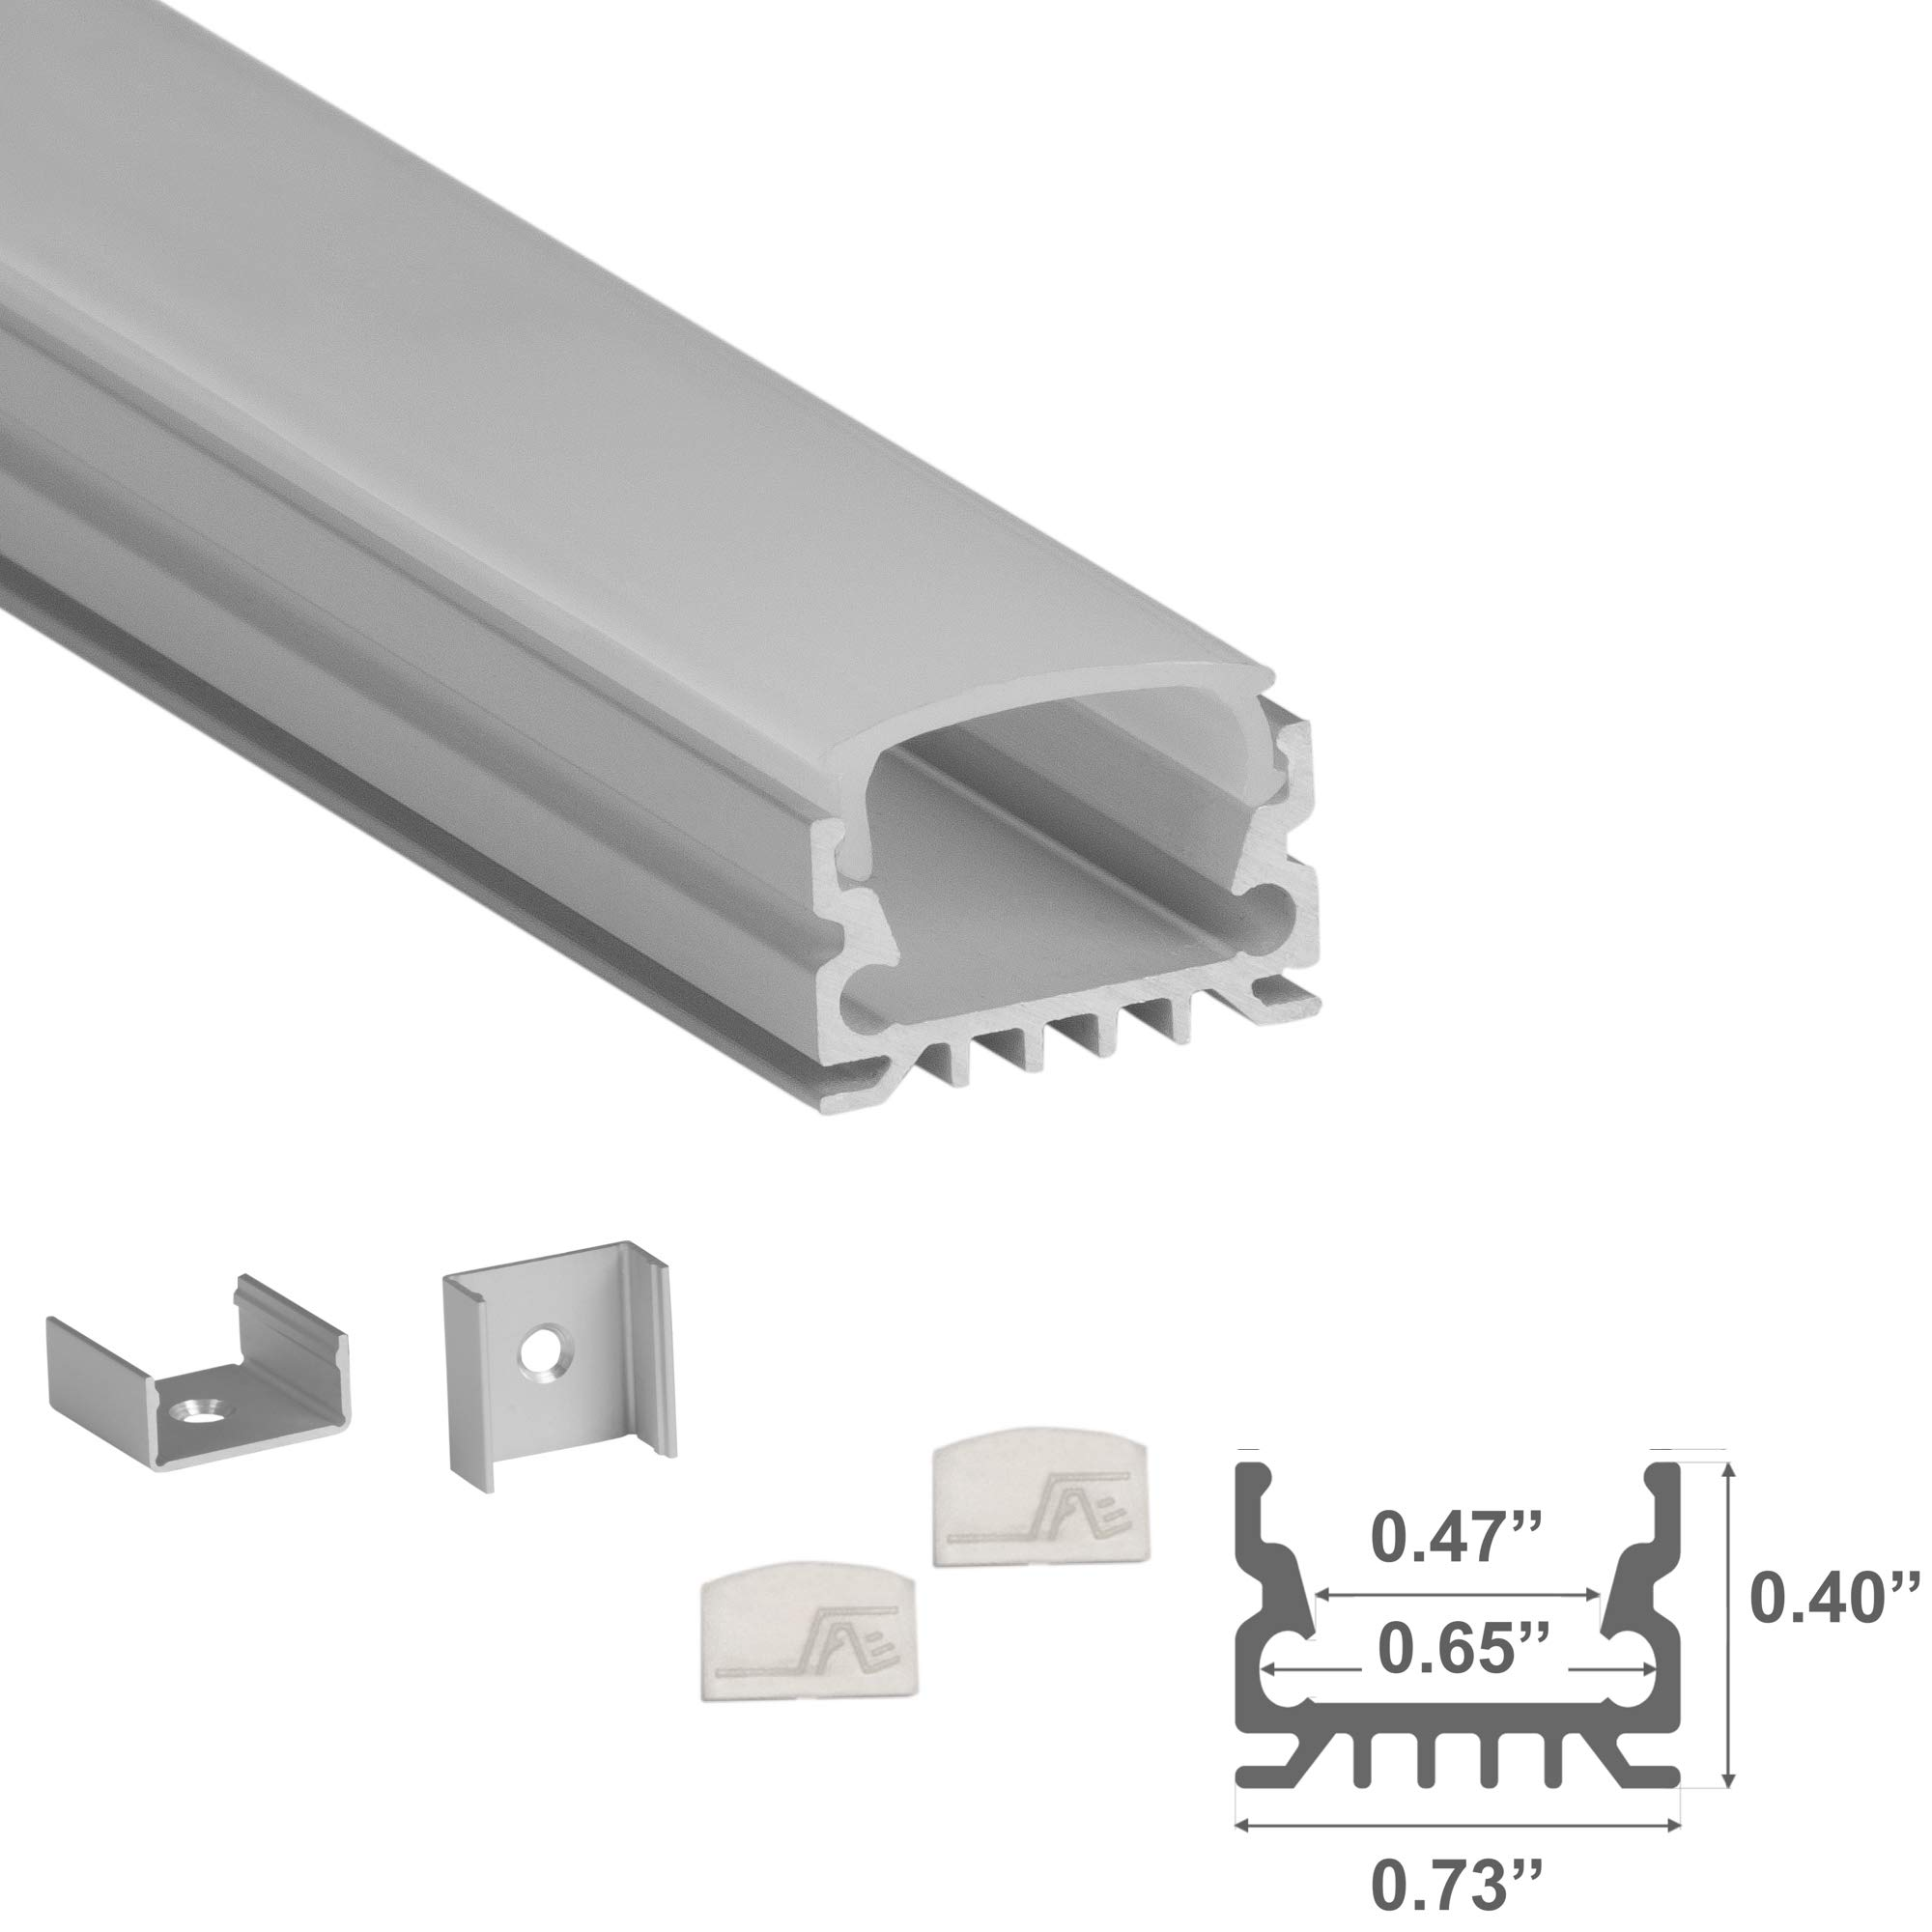 LEDPROFILES 5-Pack 4ft (1.2Meter) U Shape LED Aluminum Channel with Frosted Flat Diffuser, End Caps and Mounting Accessories - 967 Series - LED Profile Extrusion Upto 16mm/0.63'' Wide LED Strip Lights by ARMA